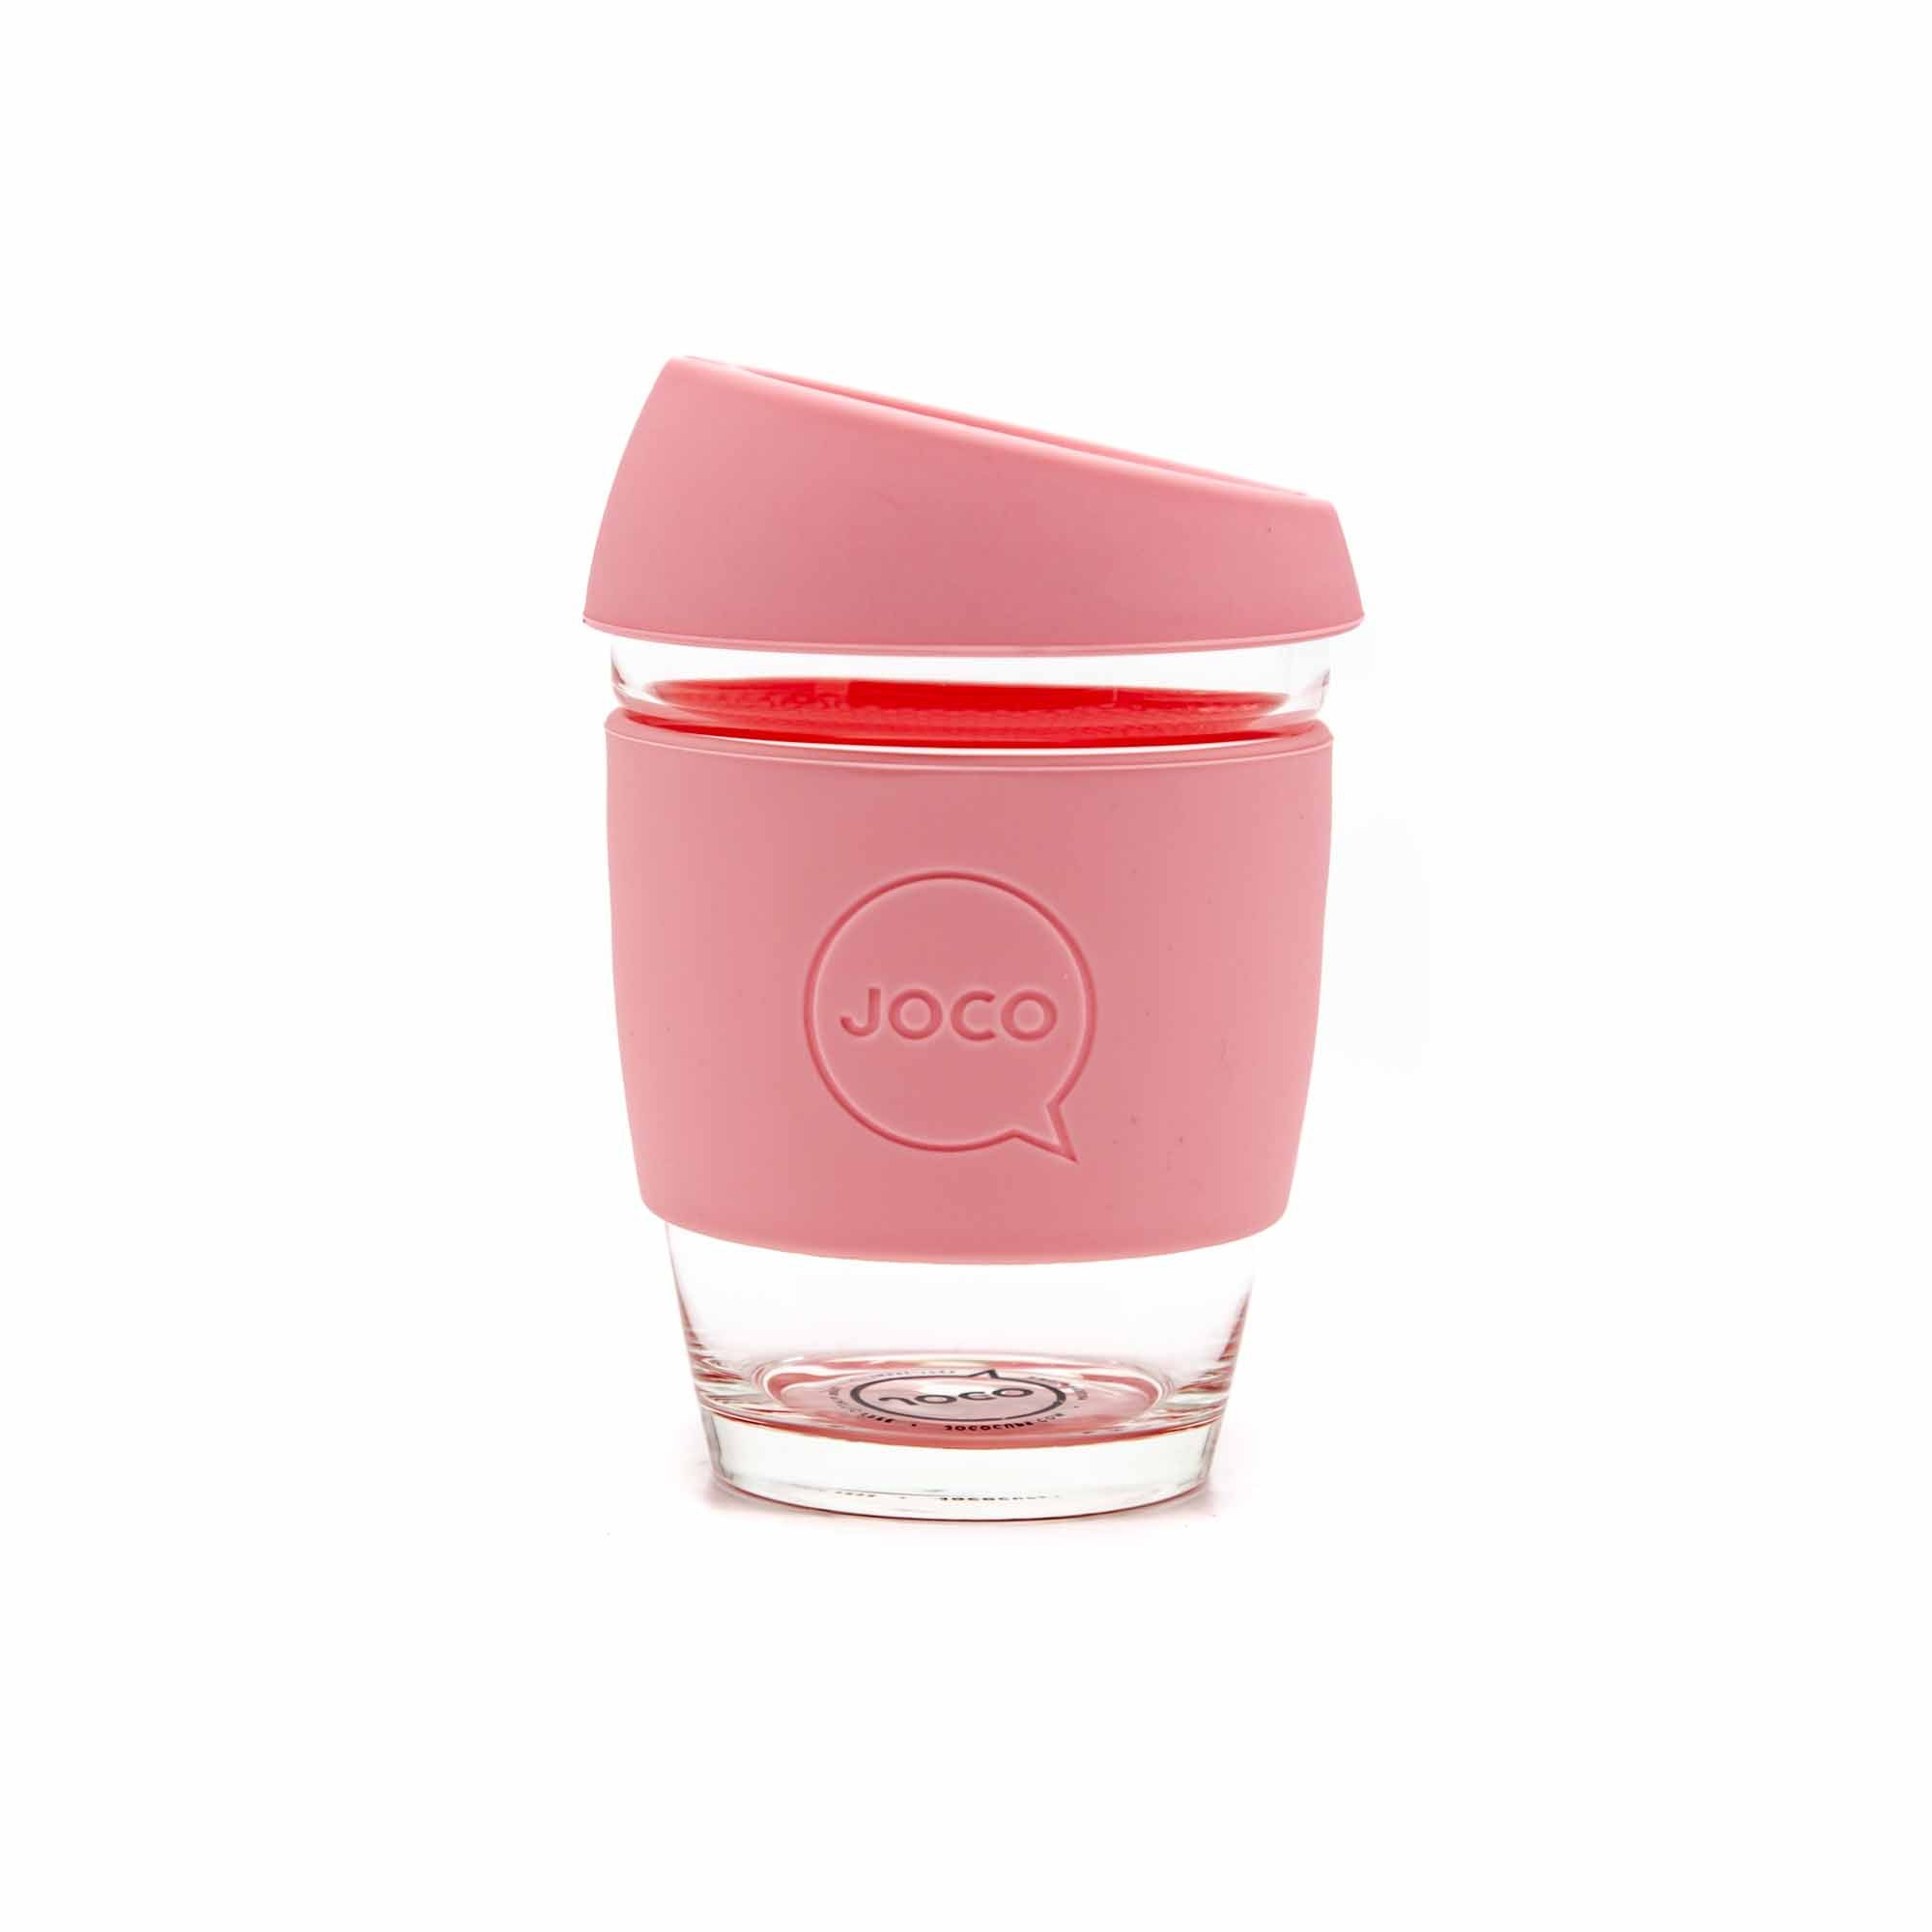 Joco Reusable Cup - 12oz - Pink - Mortise And Tenon